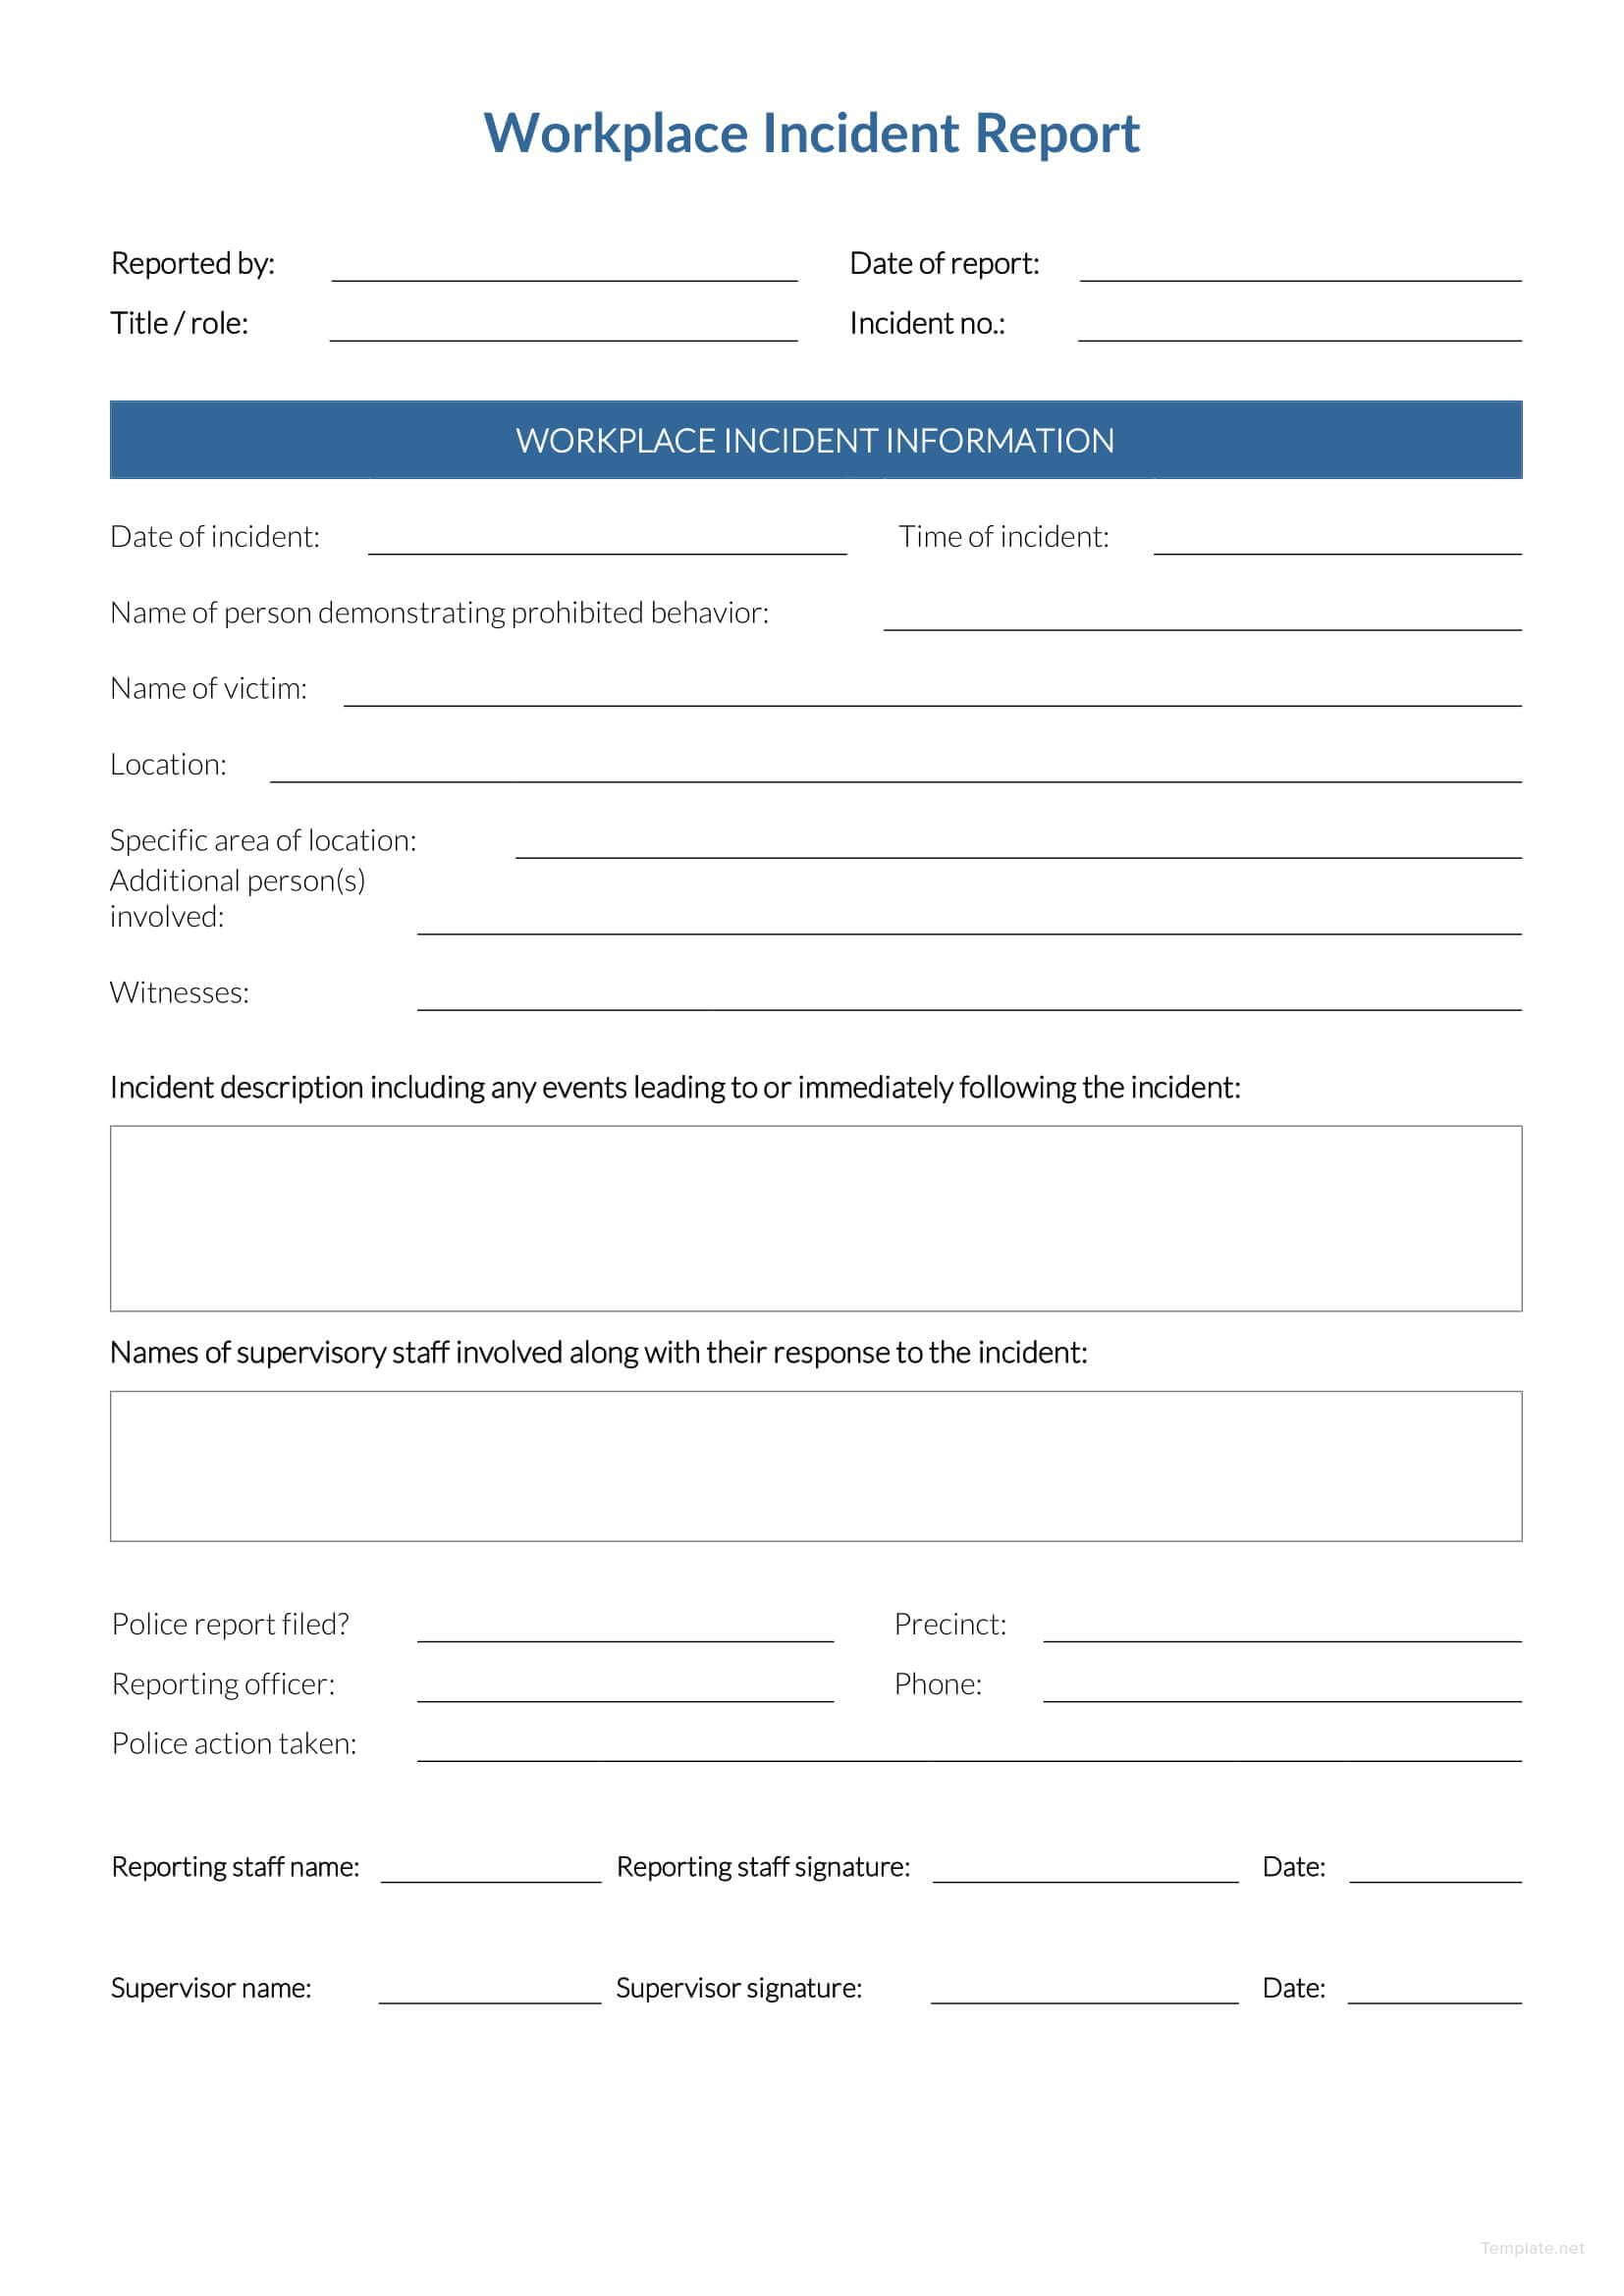 Free Workplace Incident Report | Data Form | Incident Report for Generic Incident Report Template